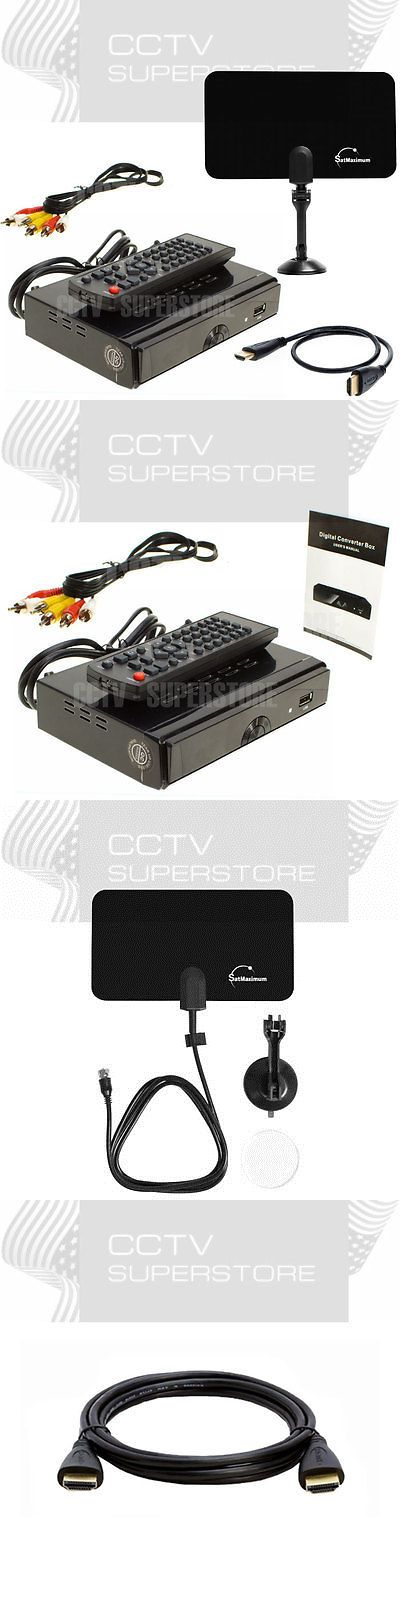 Cable TV Boxes: Hd Tv Digital Converter Box Pvr Flat Indoor Tv Antenna 25 Miles -> BUY IT NOW ONLY: $33.45 on eBay!